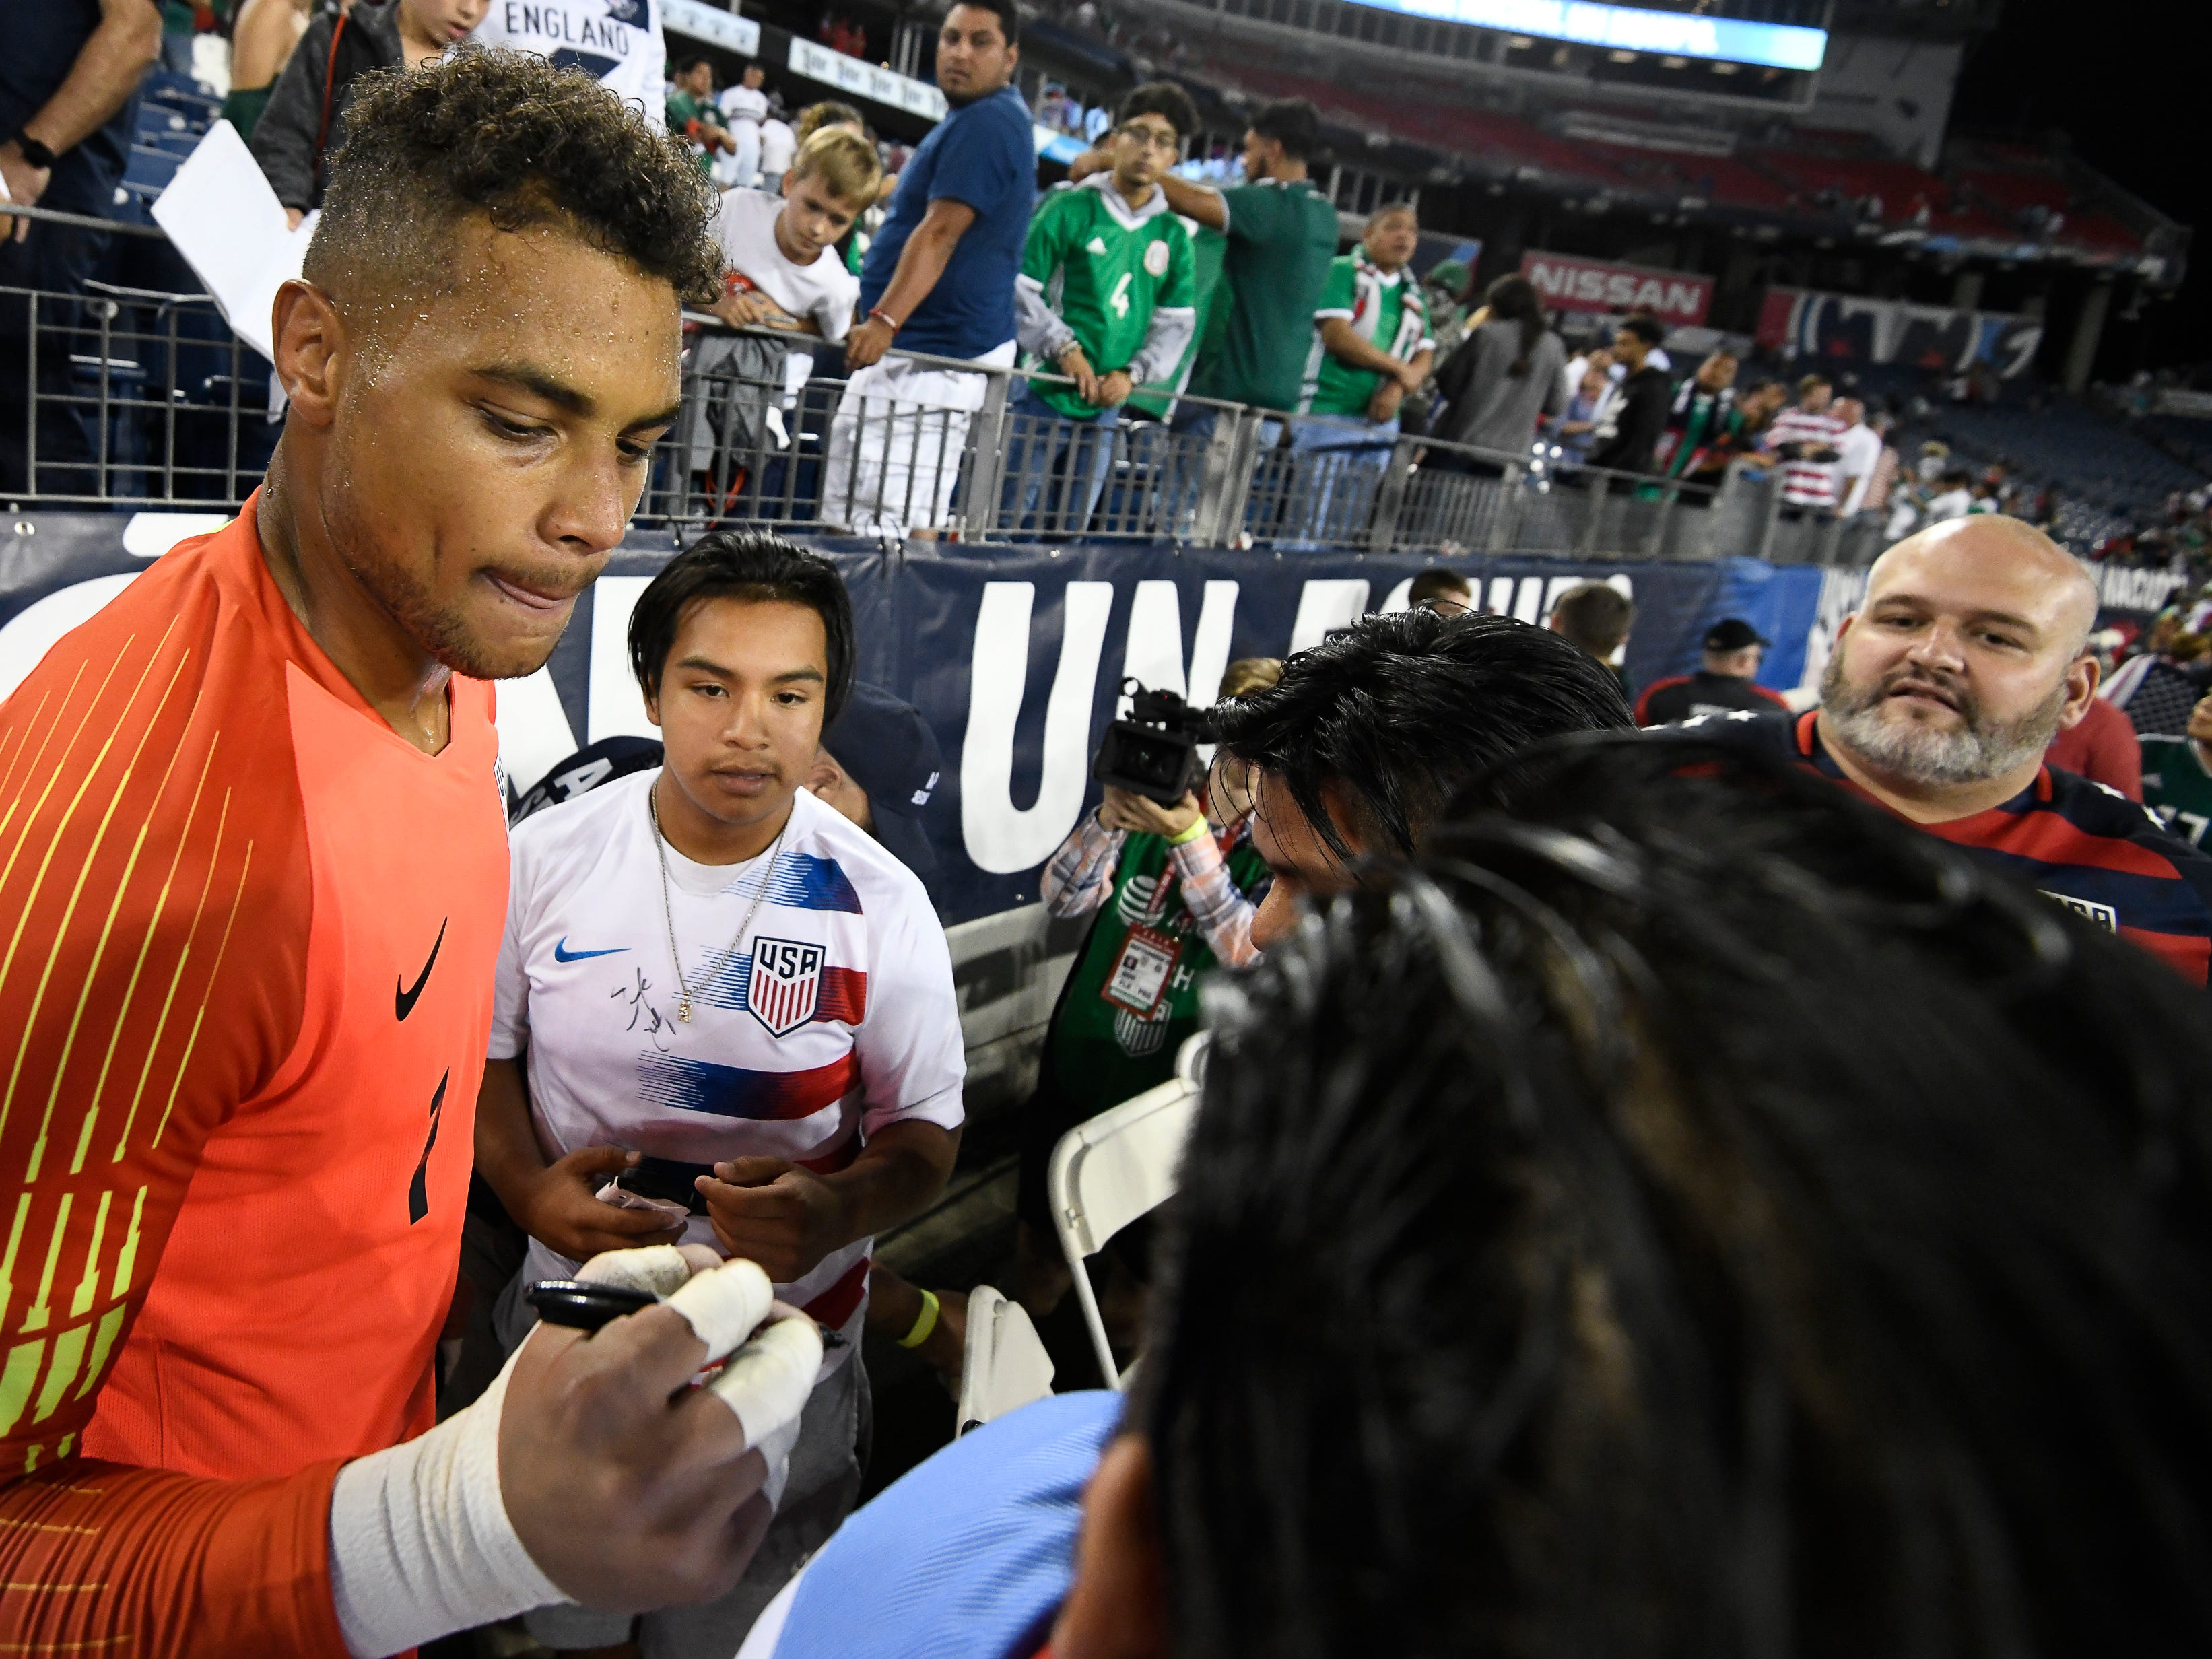 USA goalkeeper Zack Steffen (1) signs autographs for fans after their 1 to 0 victory over Mexico at Nissan Stadium Tuesday, Sept. 11, 2018, in Nashville, Tenn.